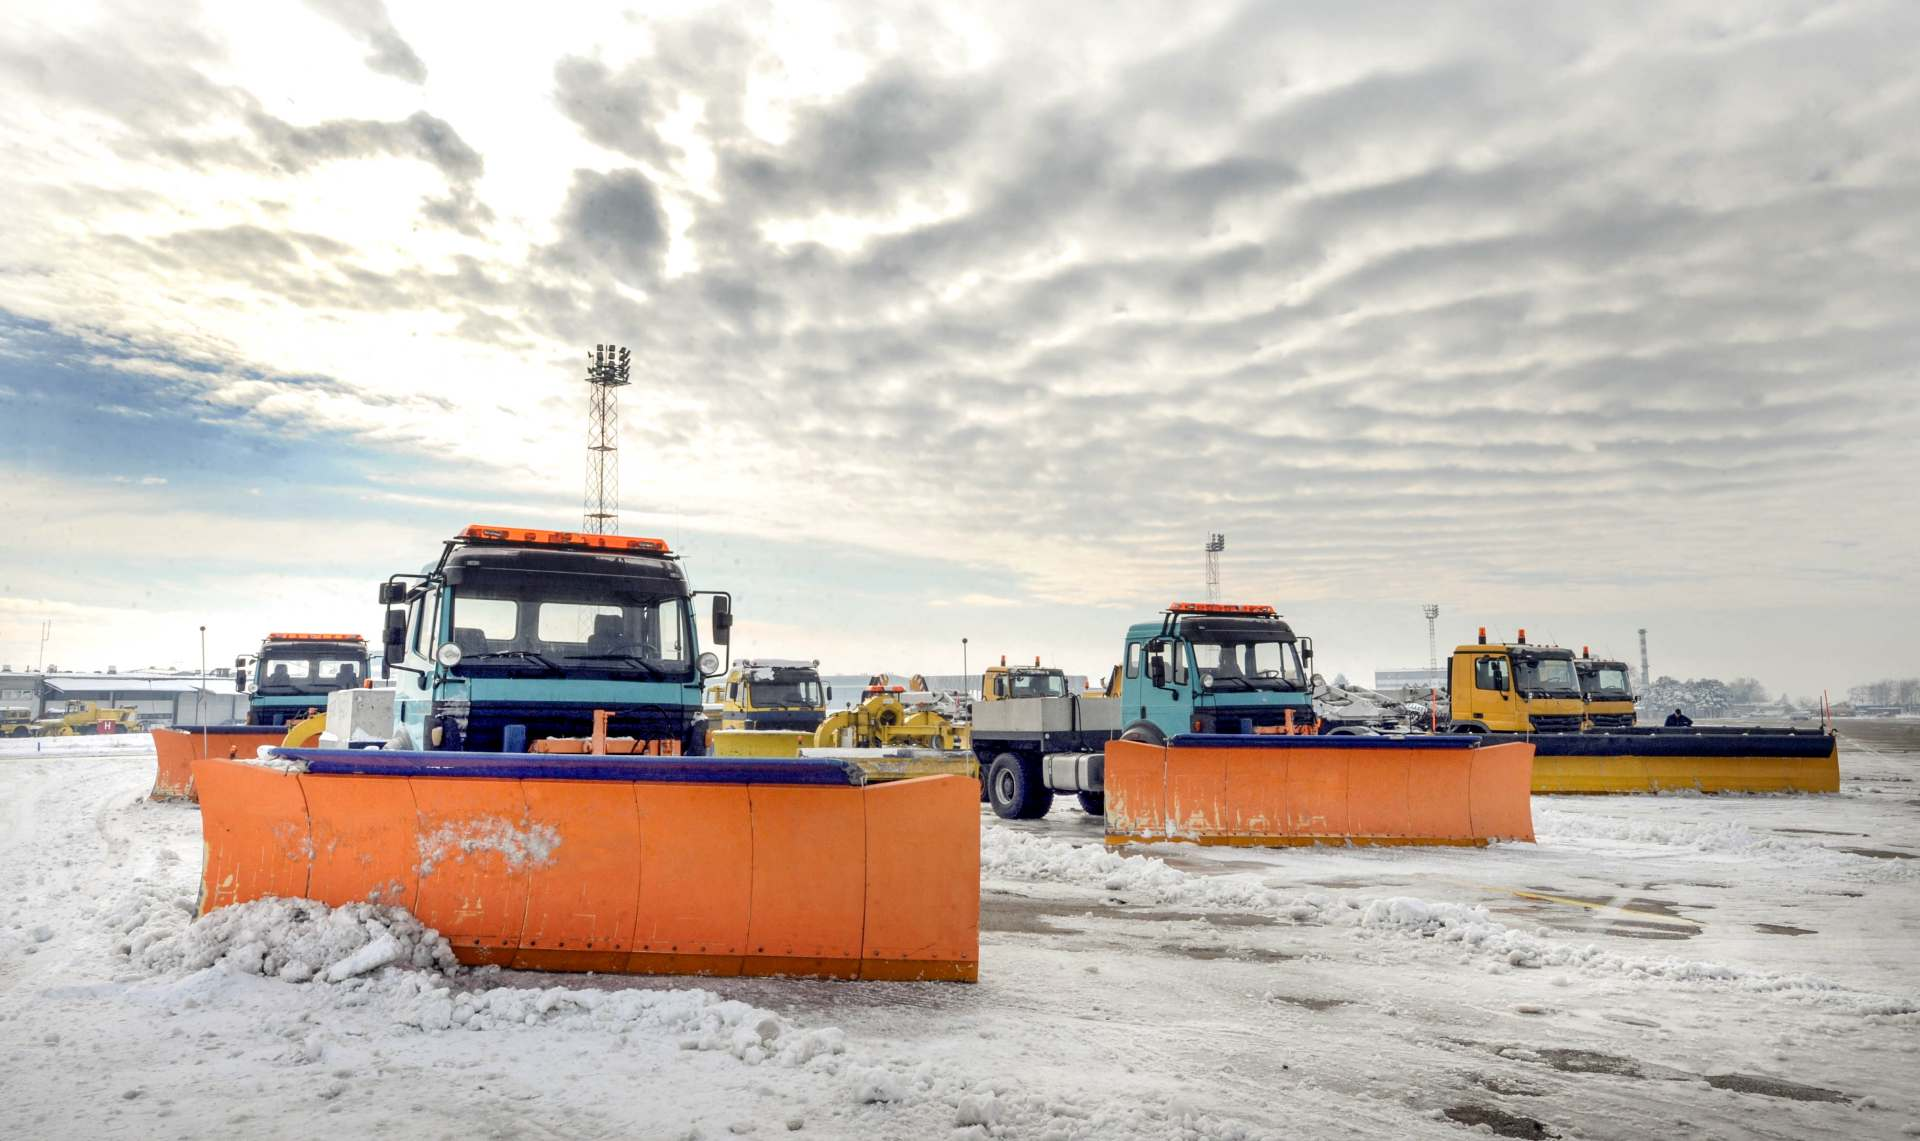 Snow Removal Vehicles